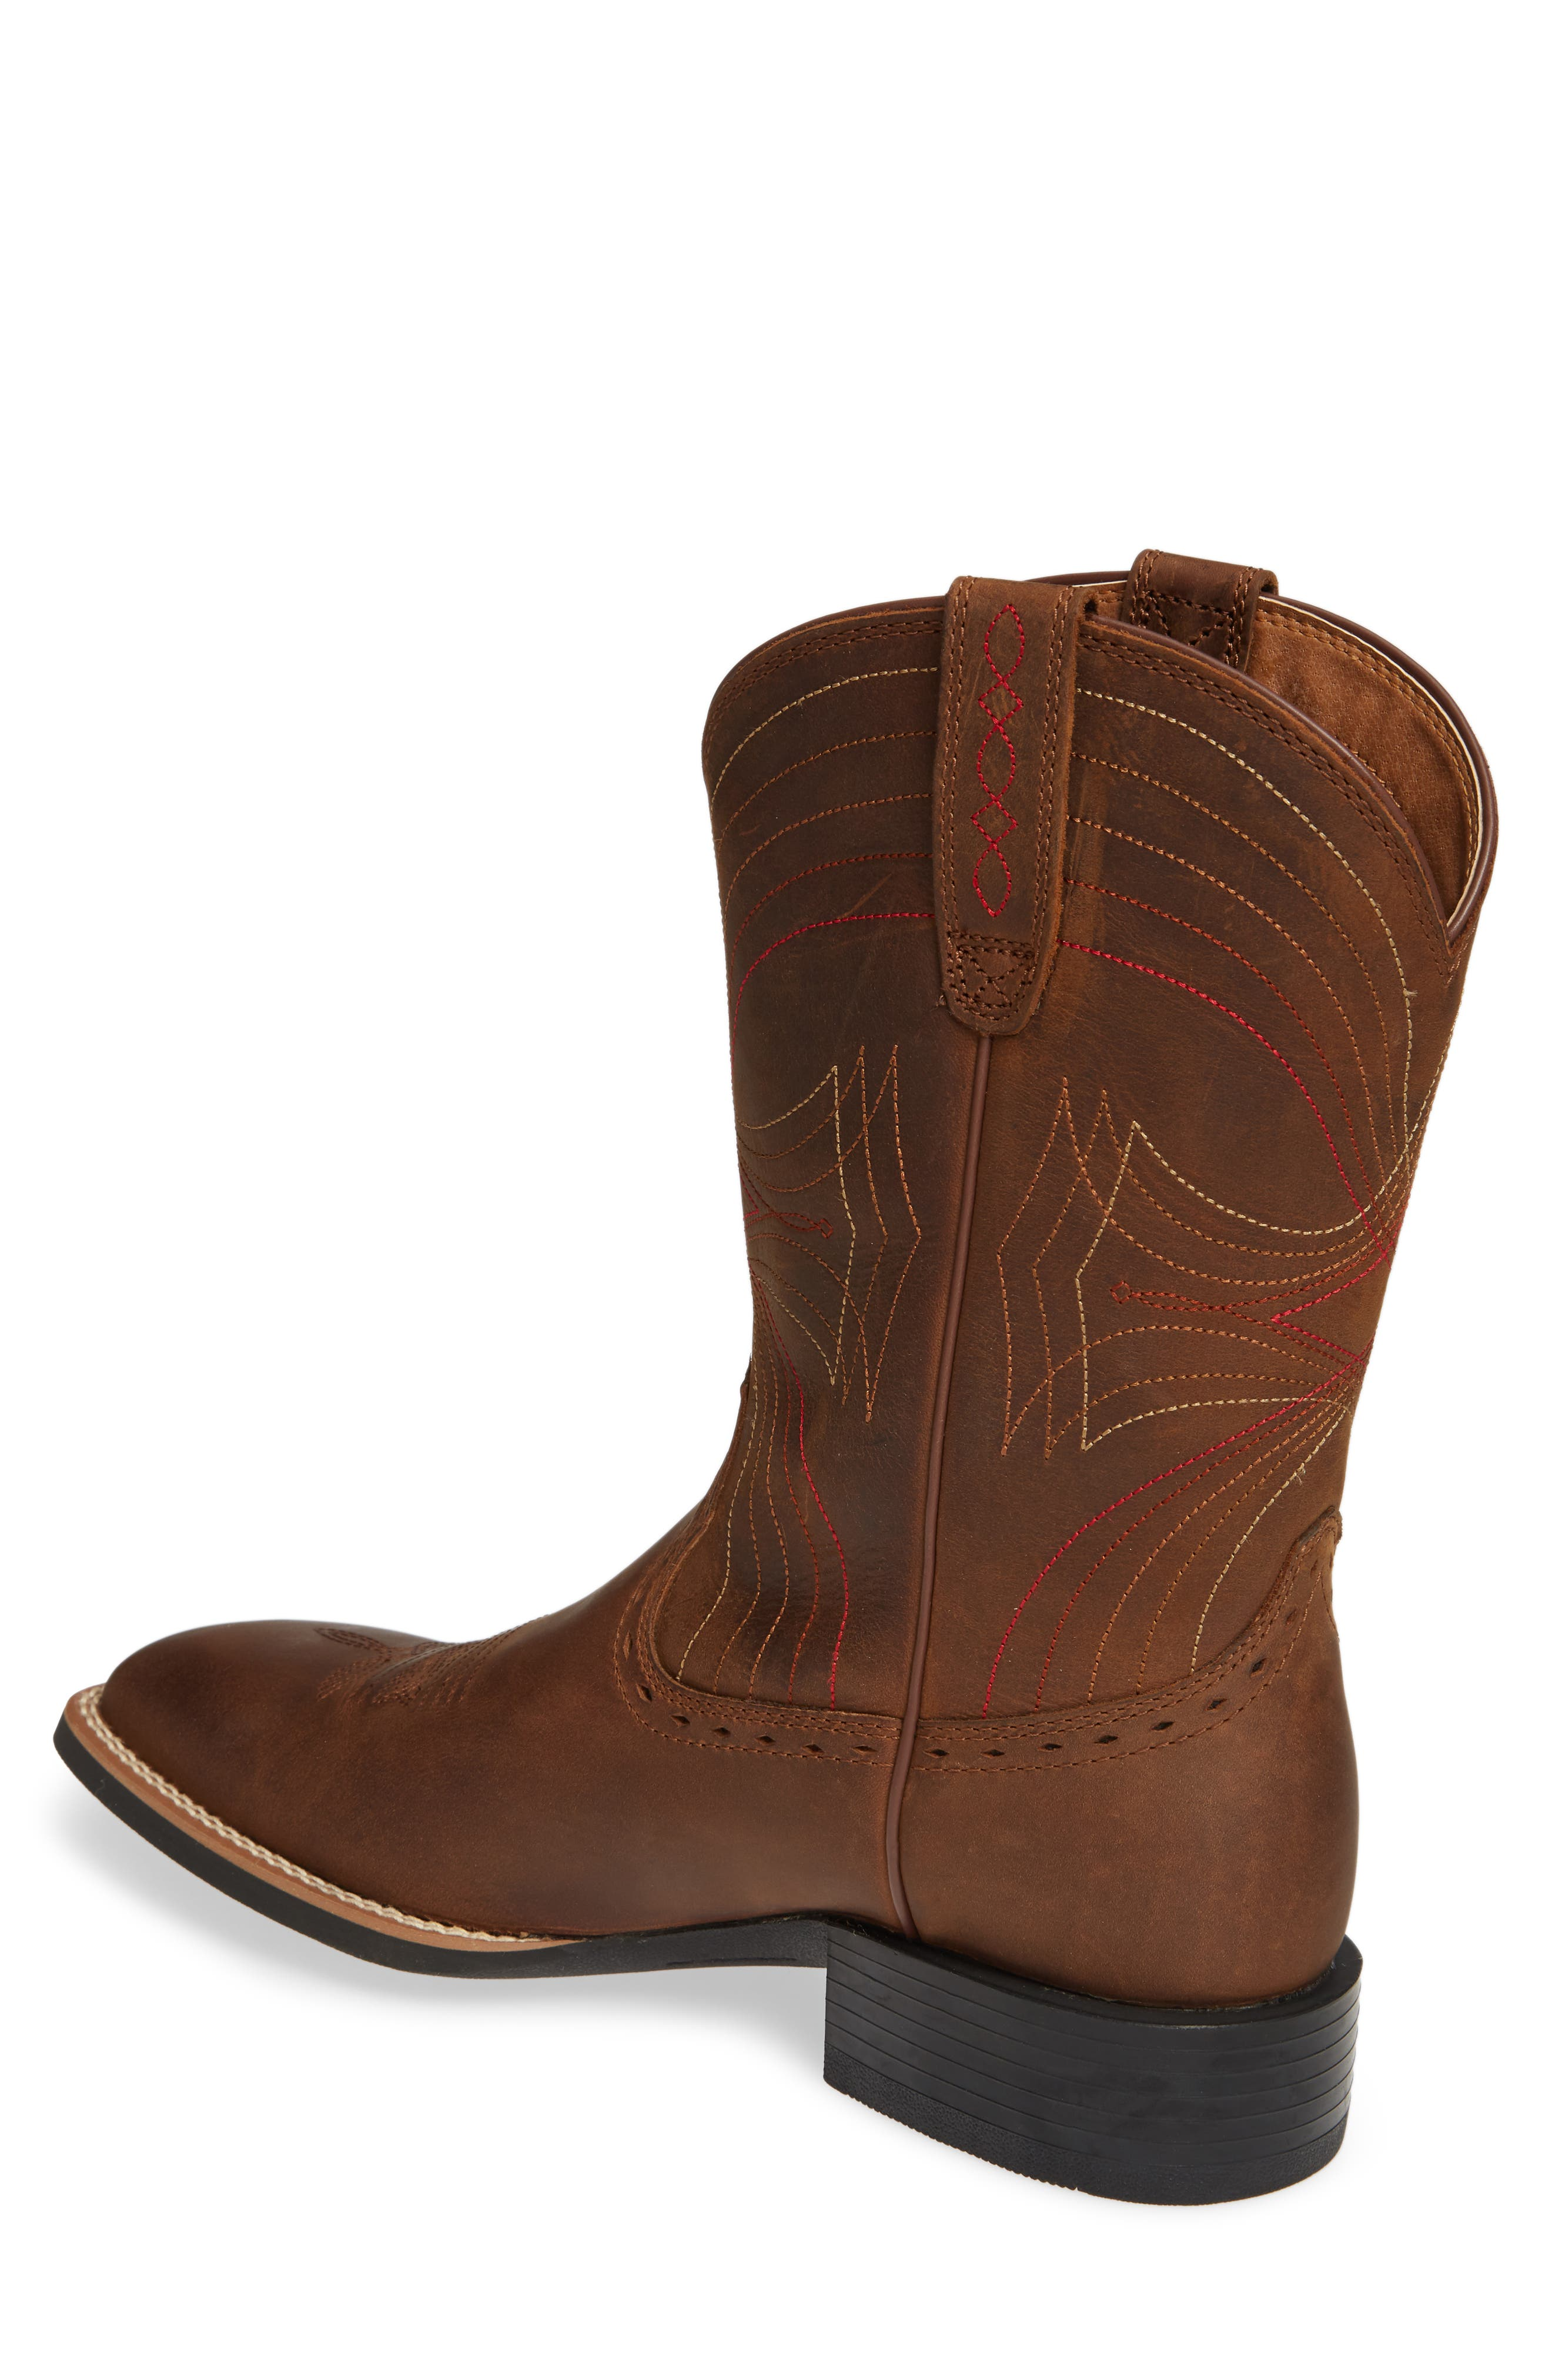 234b2df3f9e97 Ariat Boots   Shoes